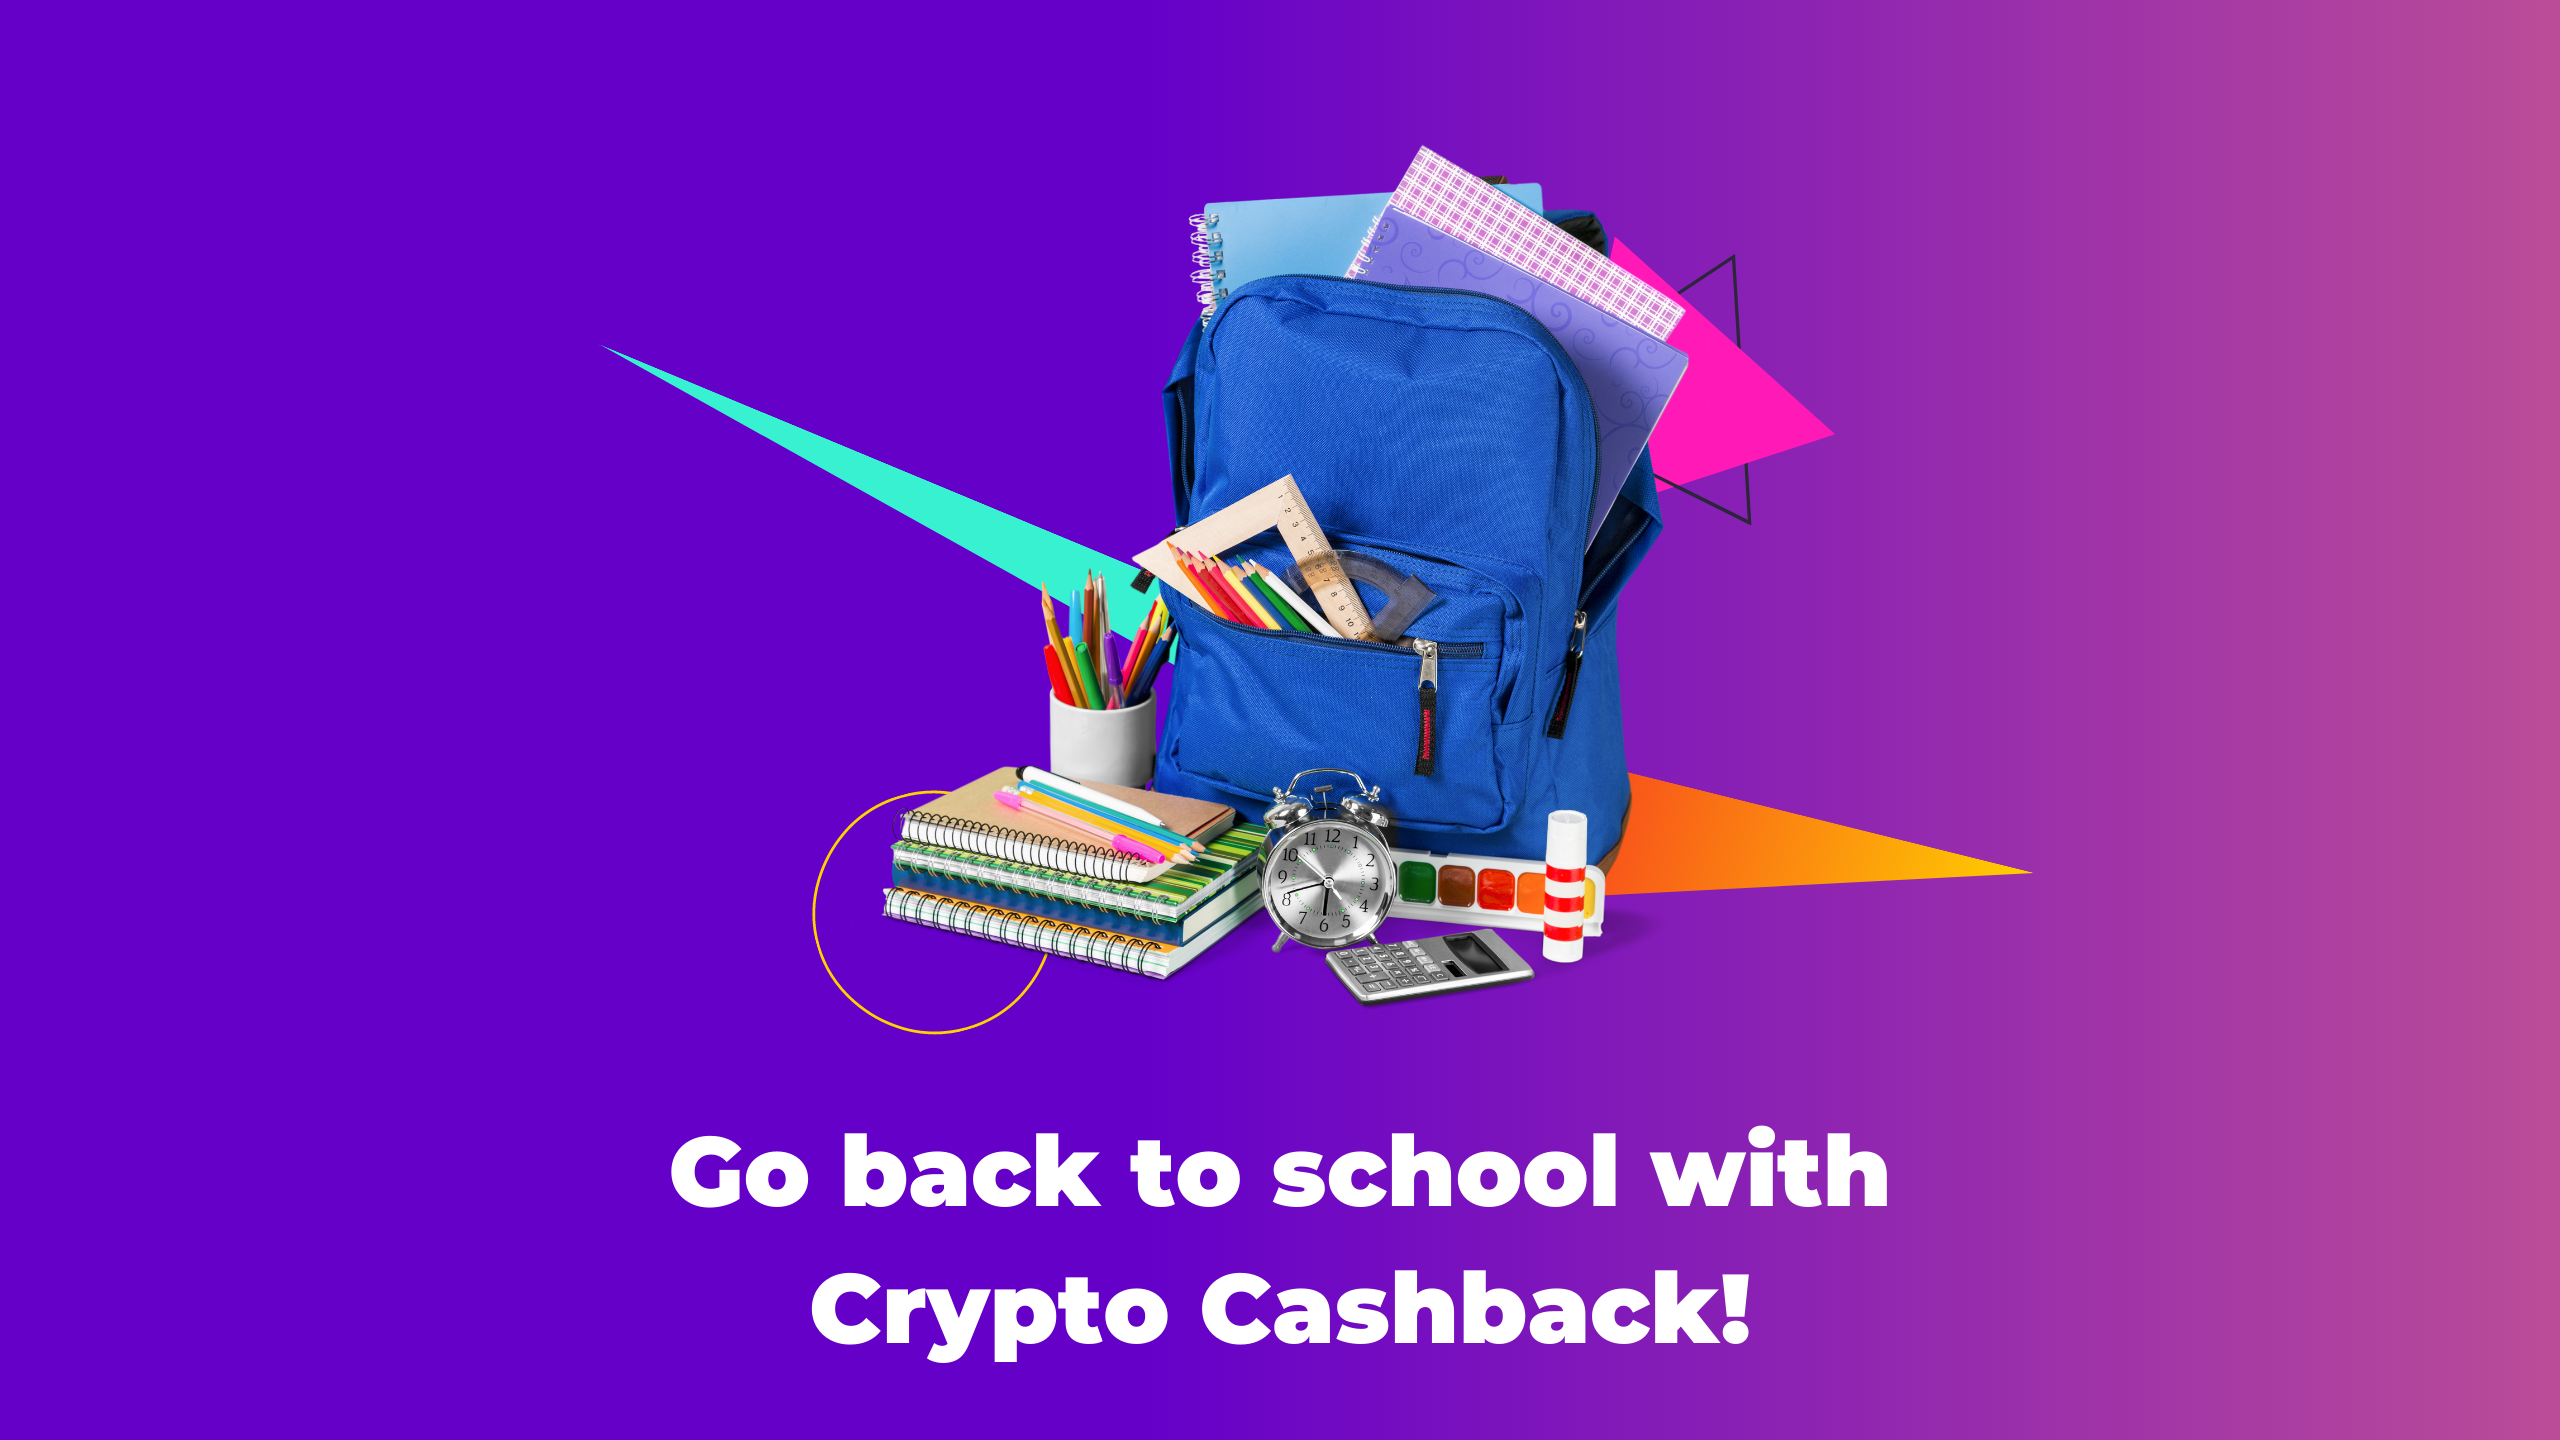 Go back to school with Crypto Cashback